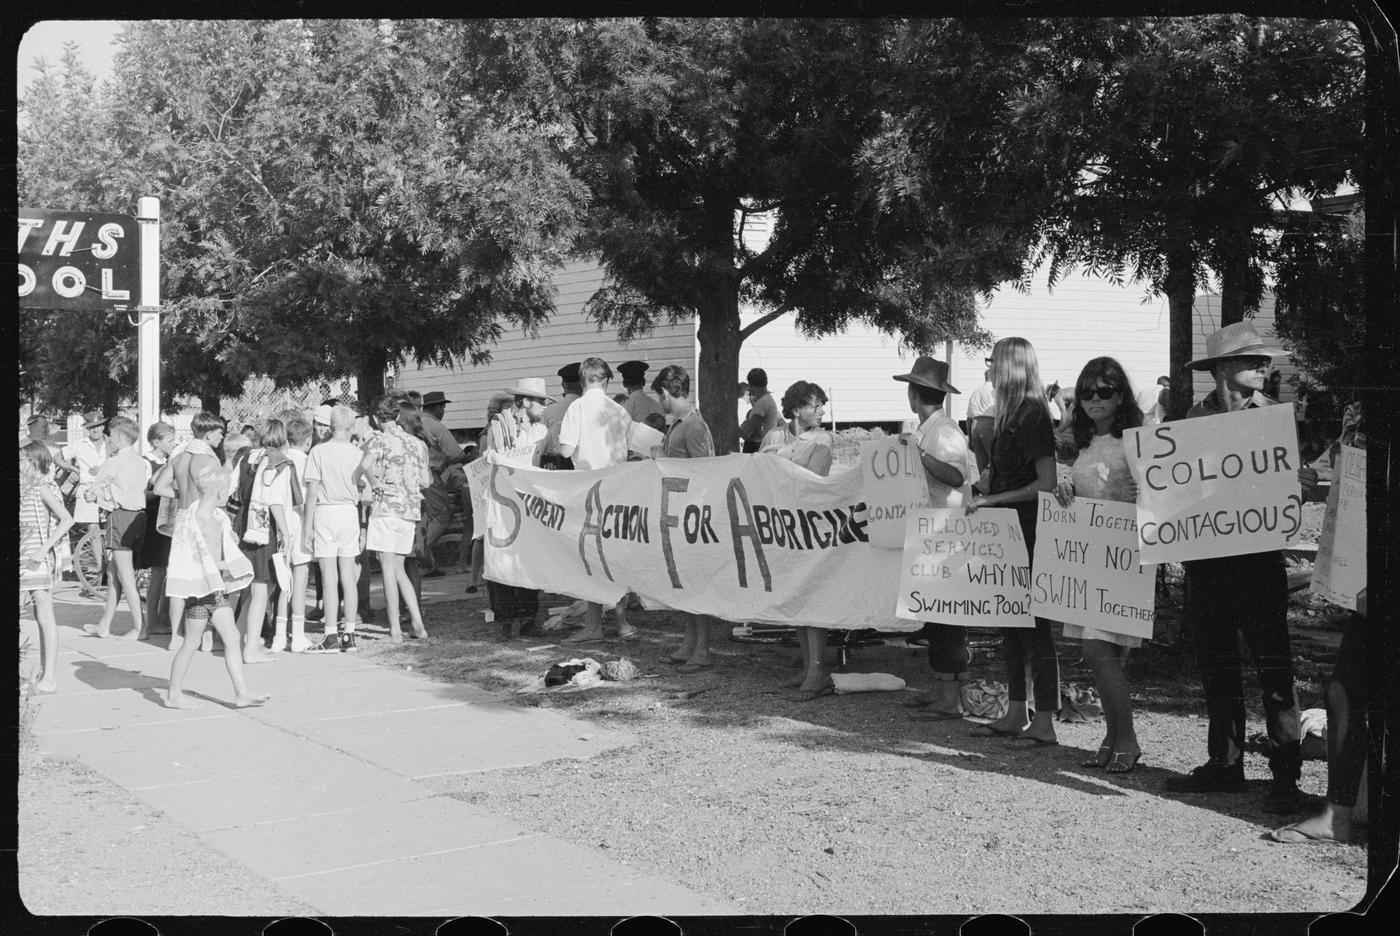 1965 Freedom Ride participants demonstrate against refusal to allow local Aboriginal children into the swimming pool in Moree. Their actions drew national and international attention to relationships between Aboriginal and non-Aboriginal people.